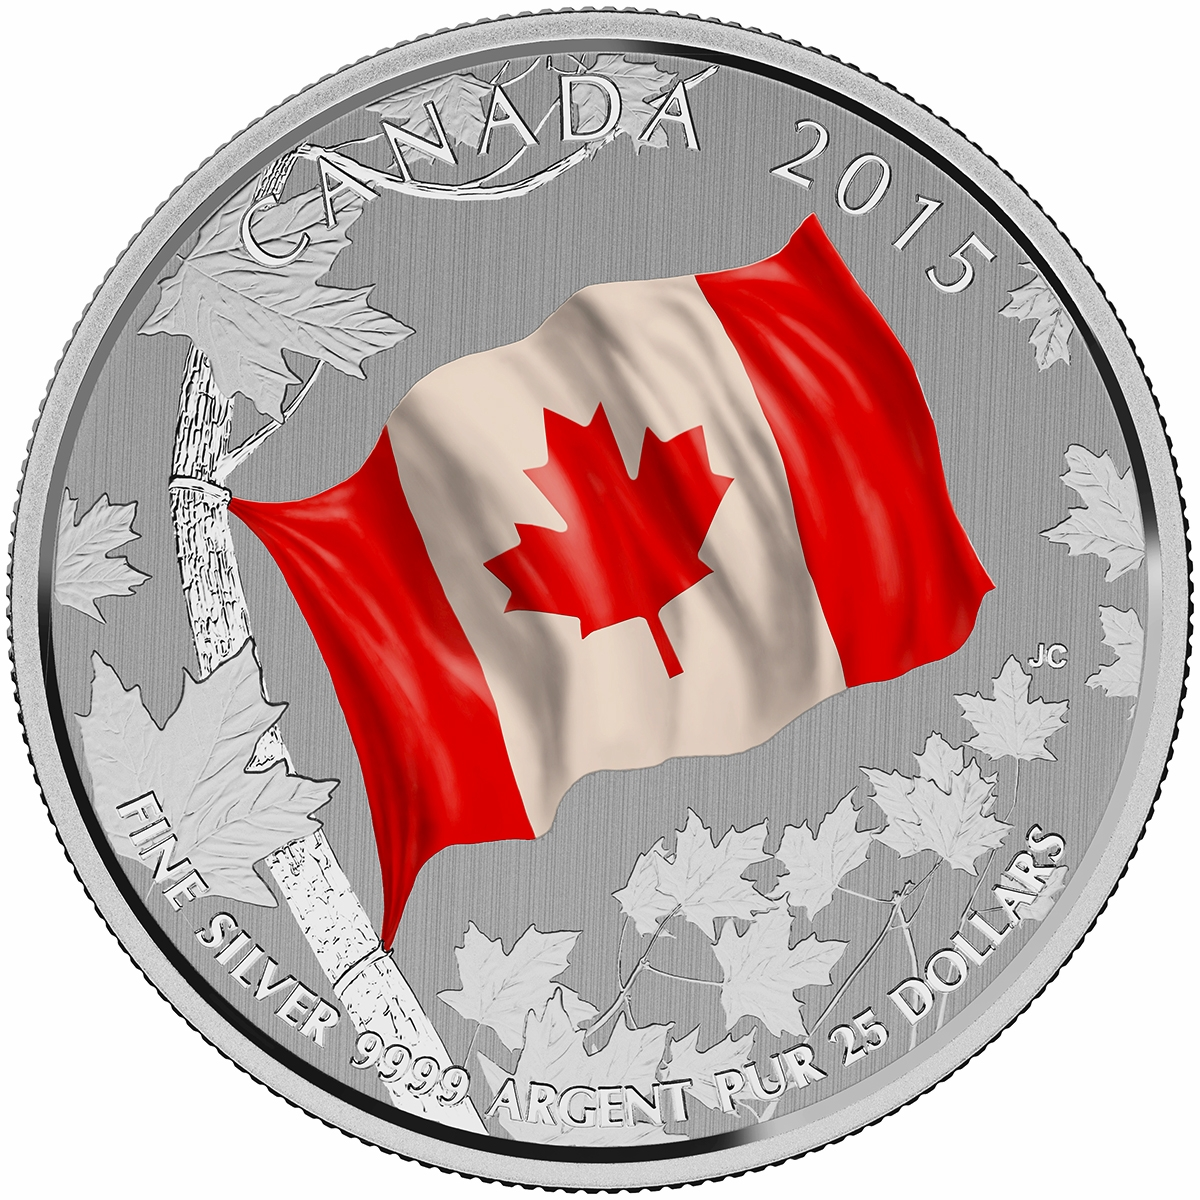 CANADA 2015 $20 Fine Silver Commemorative Coin - Canadian Flag 50th Anniversary - $25 for $25 - #15 In Series